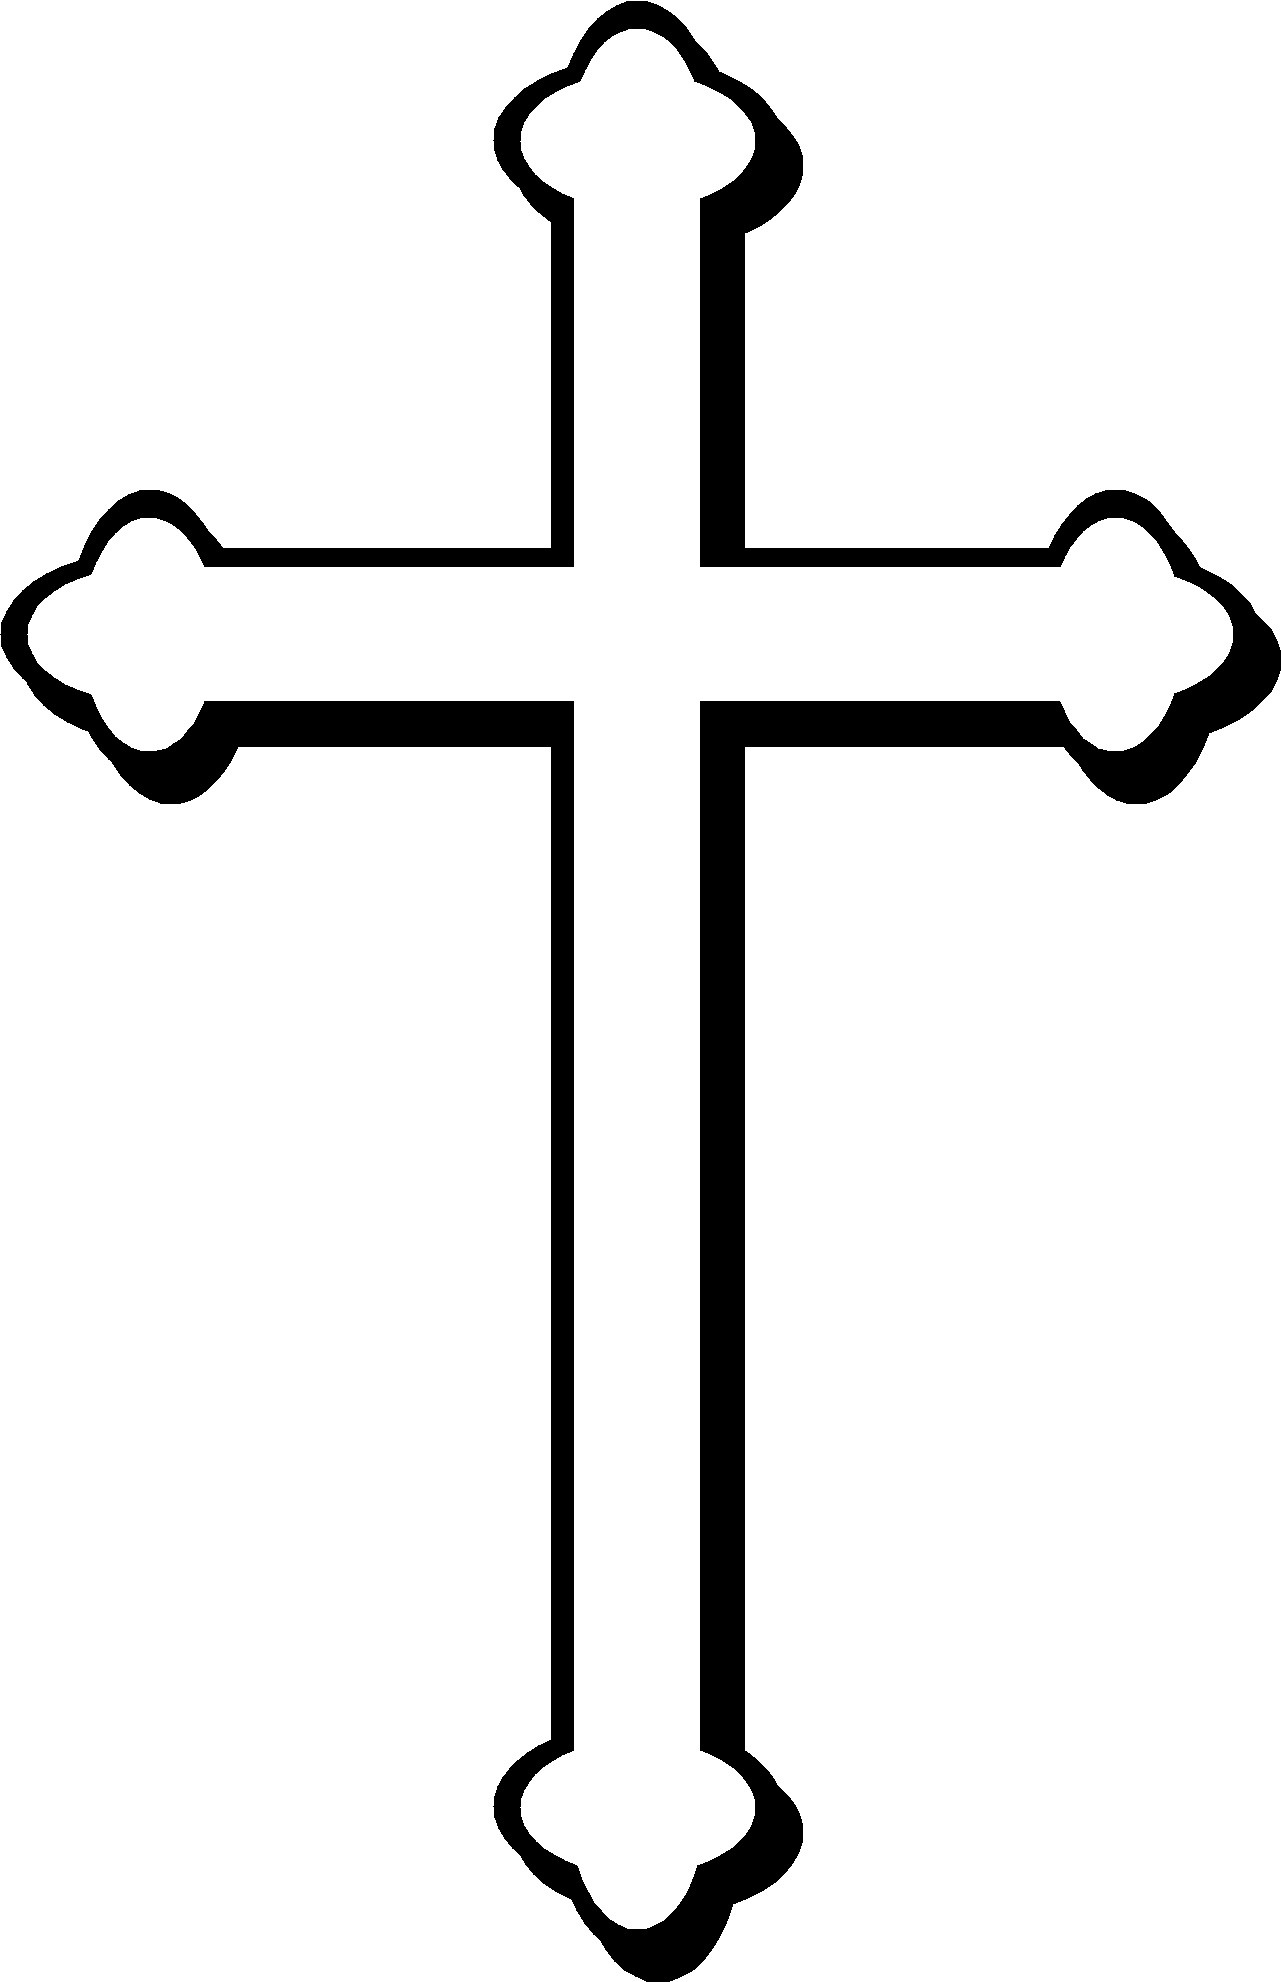 Symbol clipart protestant Clipart Images Protestant Free protestant%20clipart